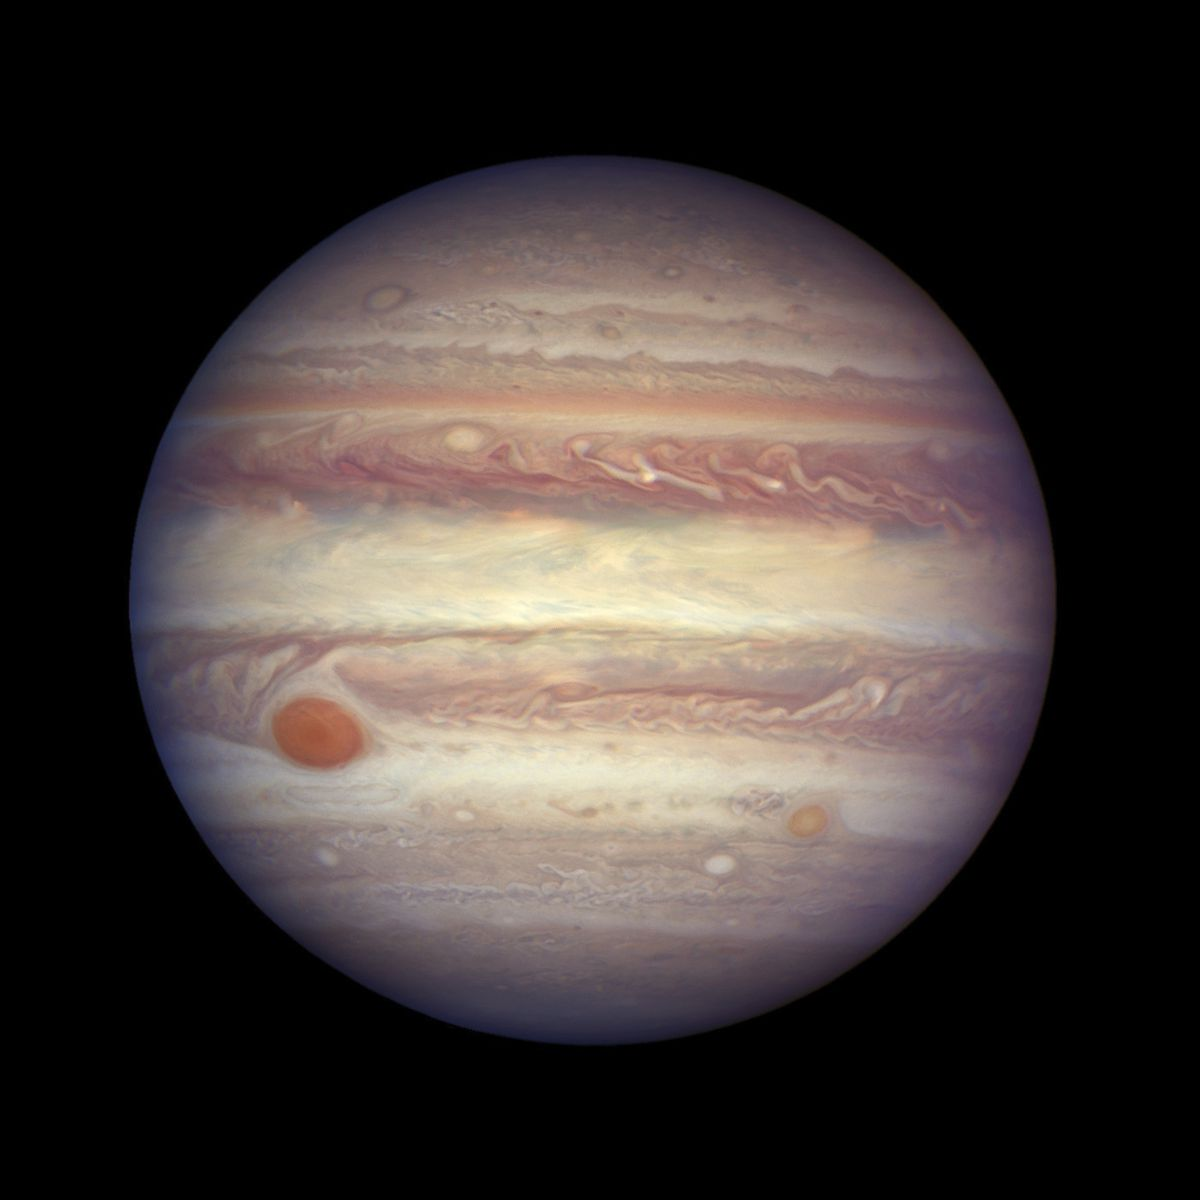 This April 3, 2017 image made available by NASA shows the planet Jupiter. A team of astronomers is reporting the recent discovery of a dozen new moons circling the giant gas planet. That brings the number of moons at Jupiter to 79, the most of any planet. The astronomers were looking for objects on the fringes of the solar system when they spotted the Jupiter moons. They found a dozen small moons. The confirmation of 10 was announced Tuesday, July 17, 2018; two were confirmed earlier. They're calling one moon an 'oddball' because of its unusual orbit. (NASA, ESA, and A. Simon (GSFC) via AP, File)